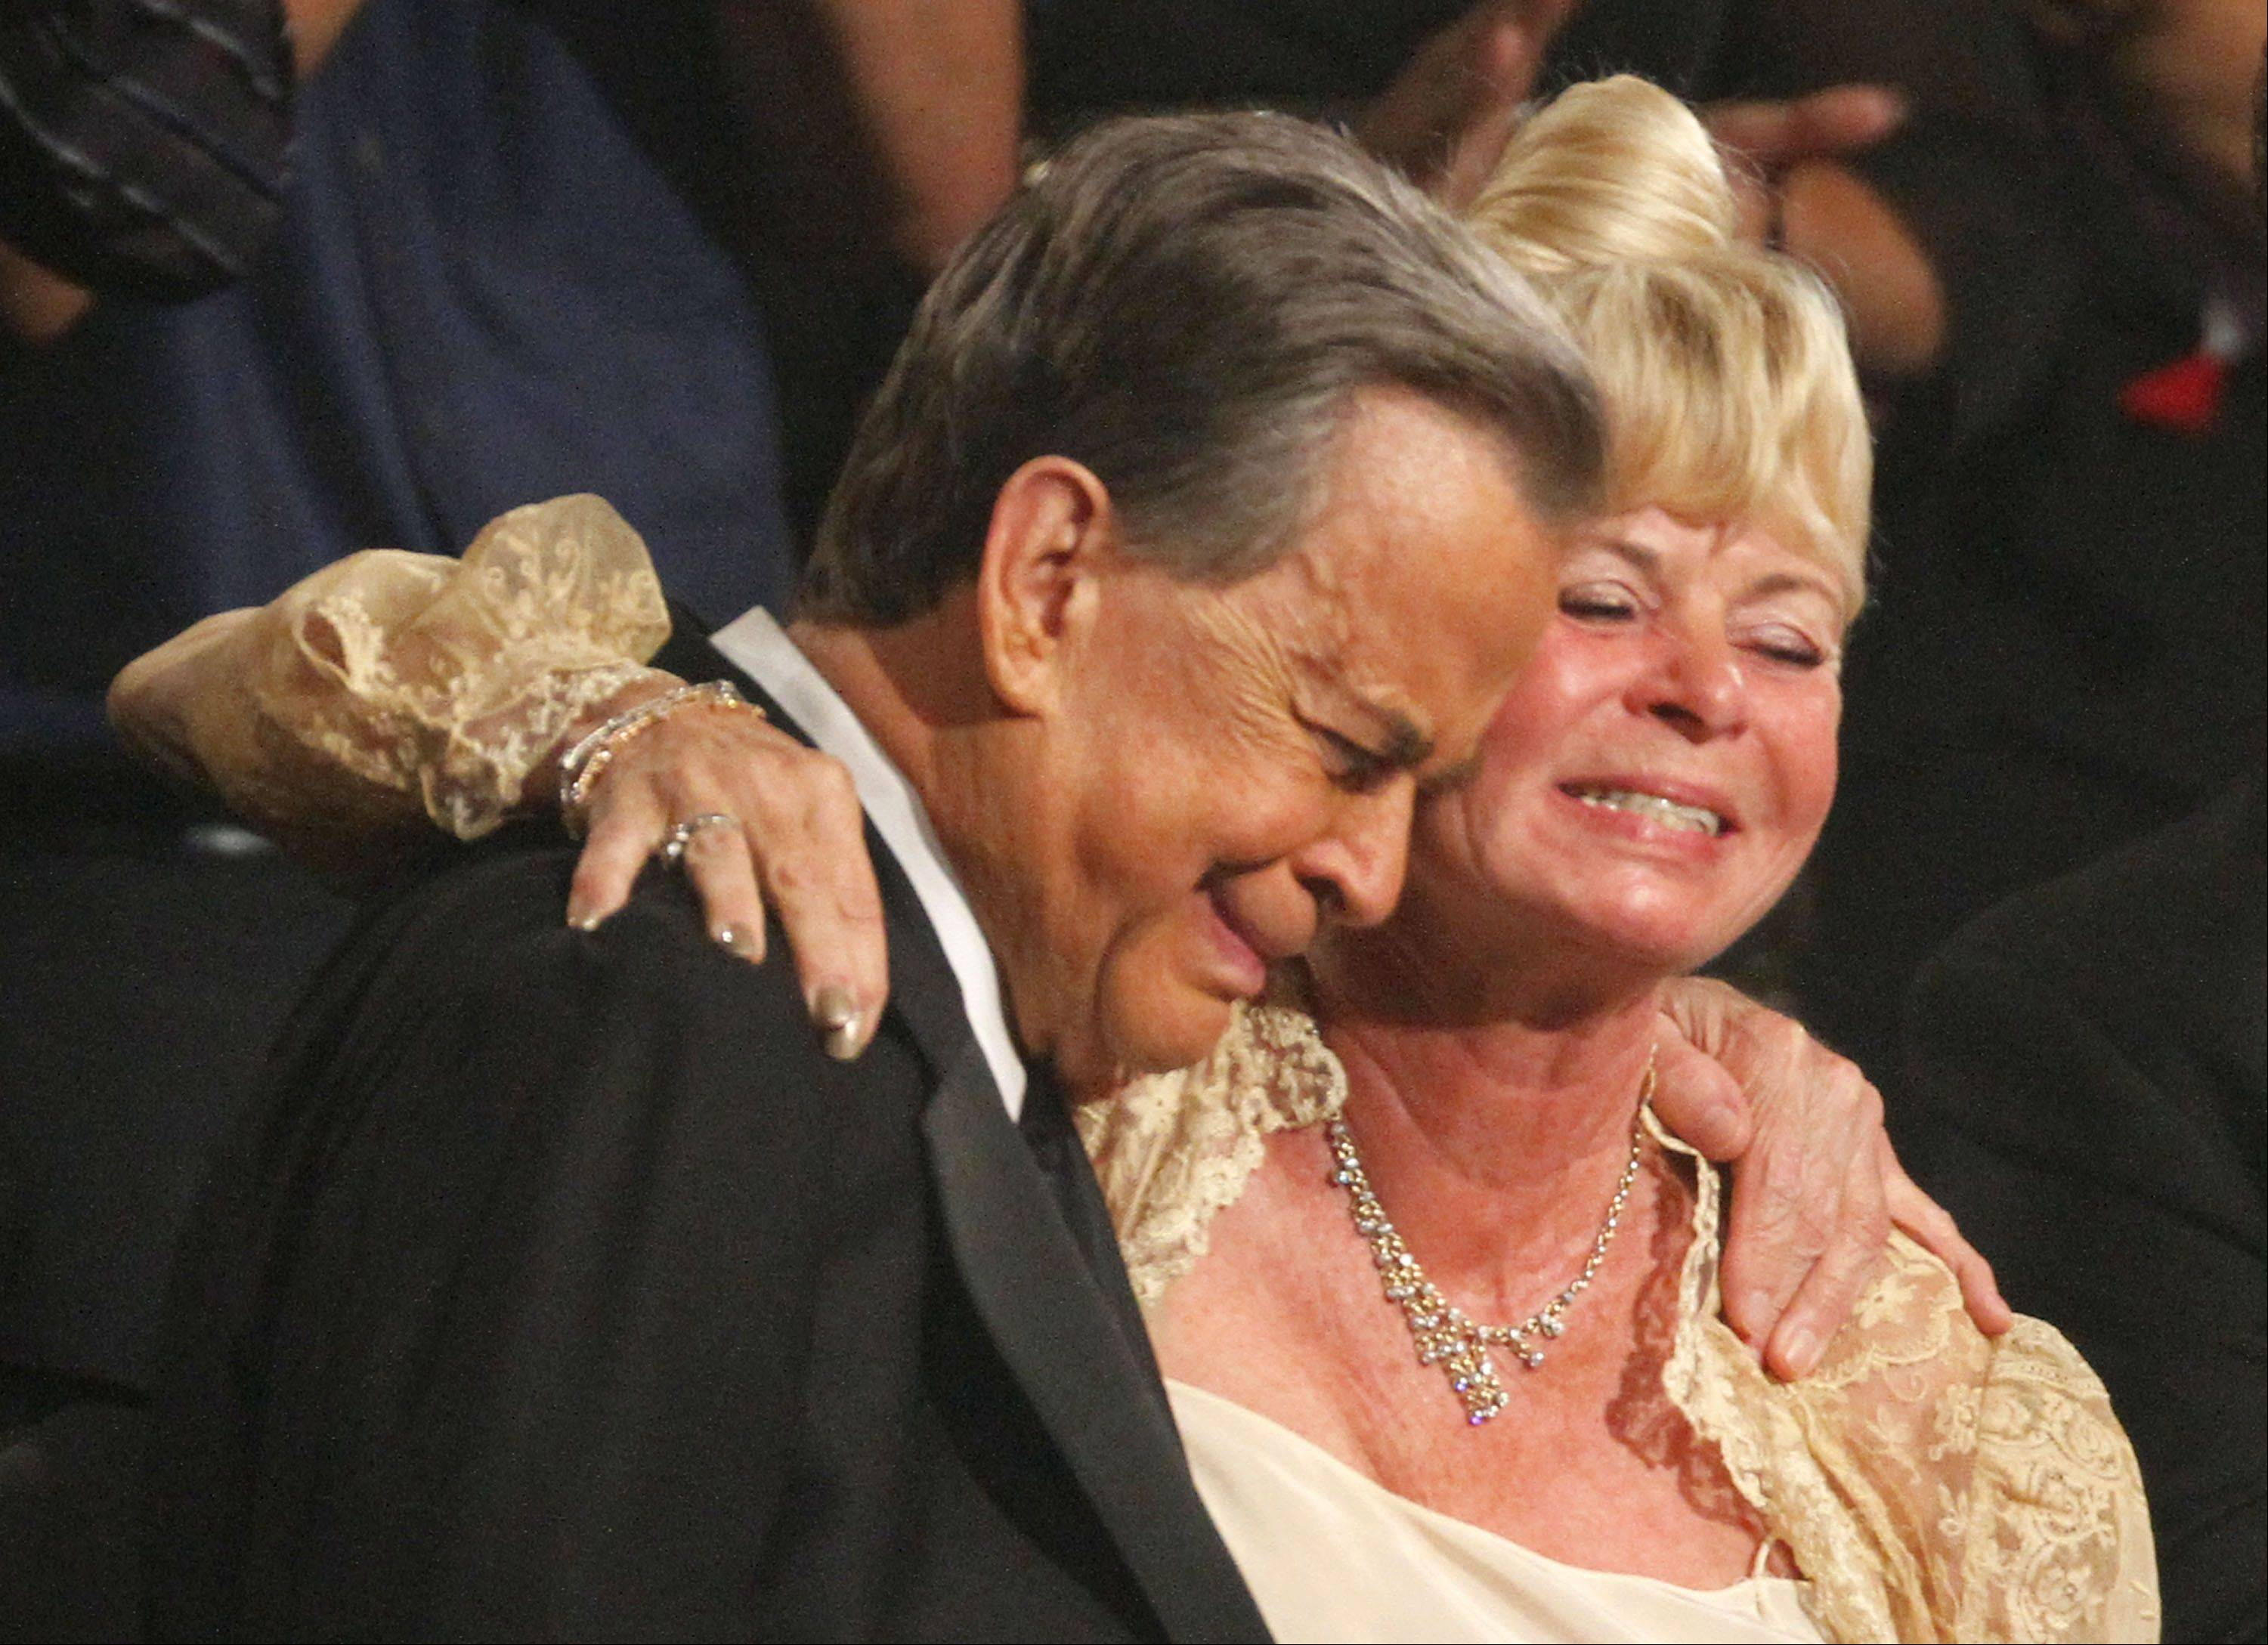 Dick Clark, left, is seen with Kari Clark after the American Bandstand Tribute at the 37th Annual Daytime Emmy Awards on Sunday, June 27, 2010, in Las Vegas.